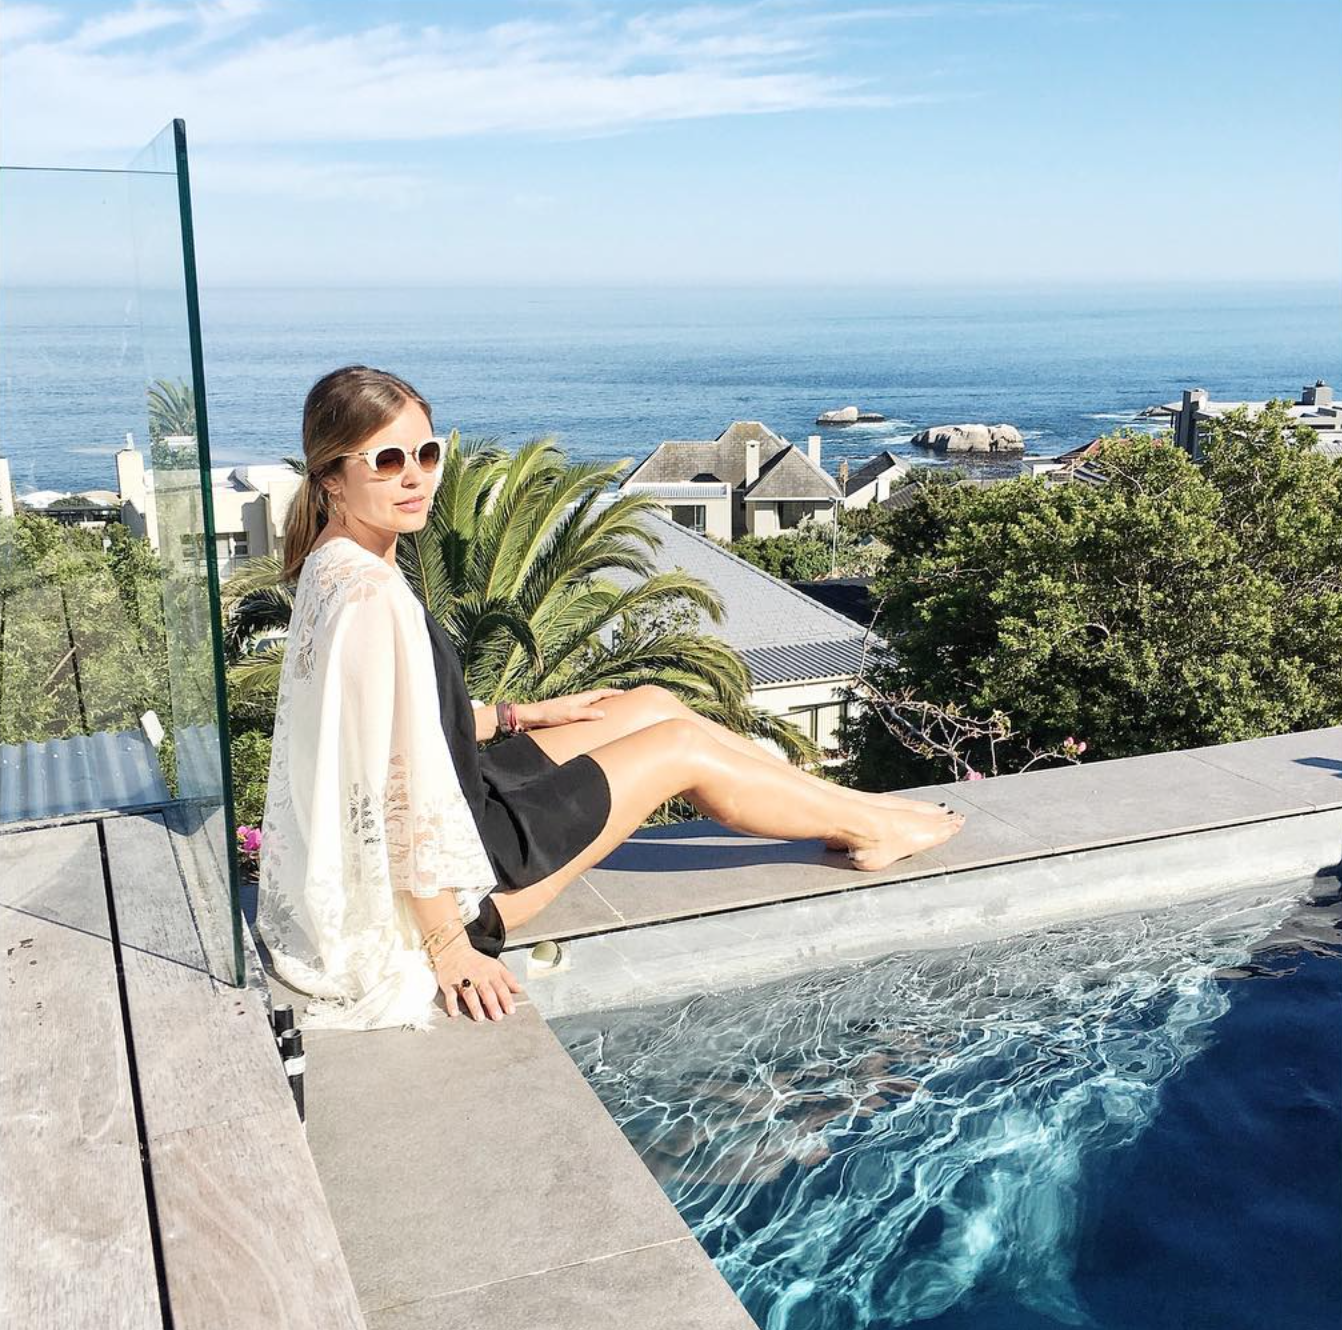 Unser Wohntraum in Camps Bay